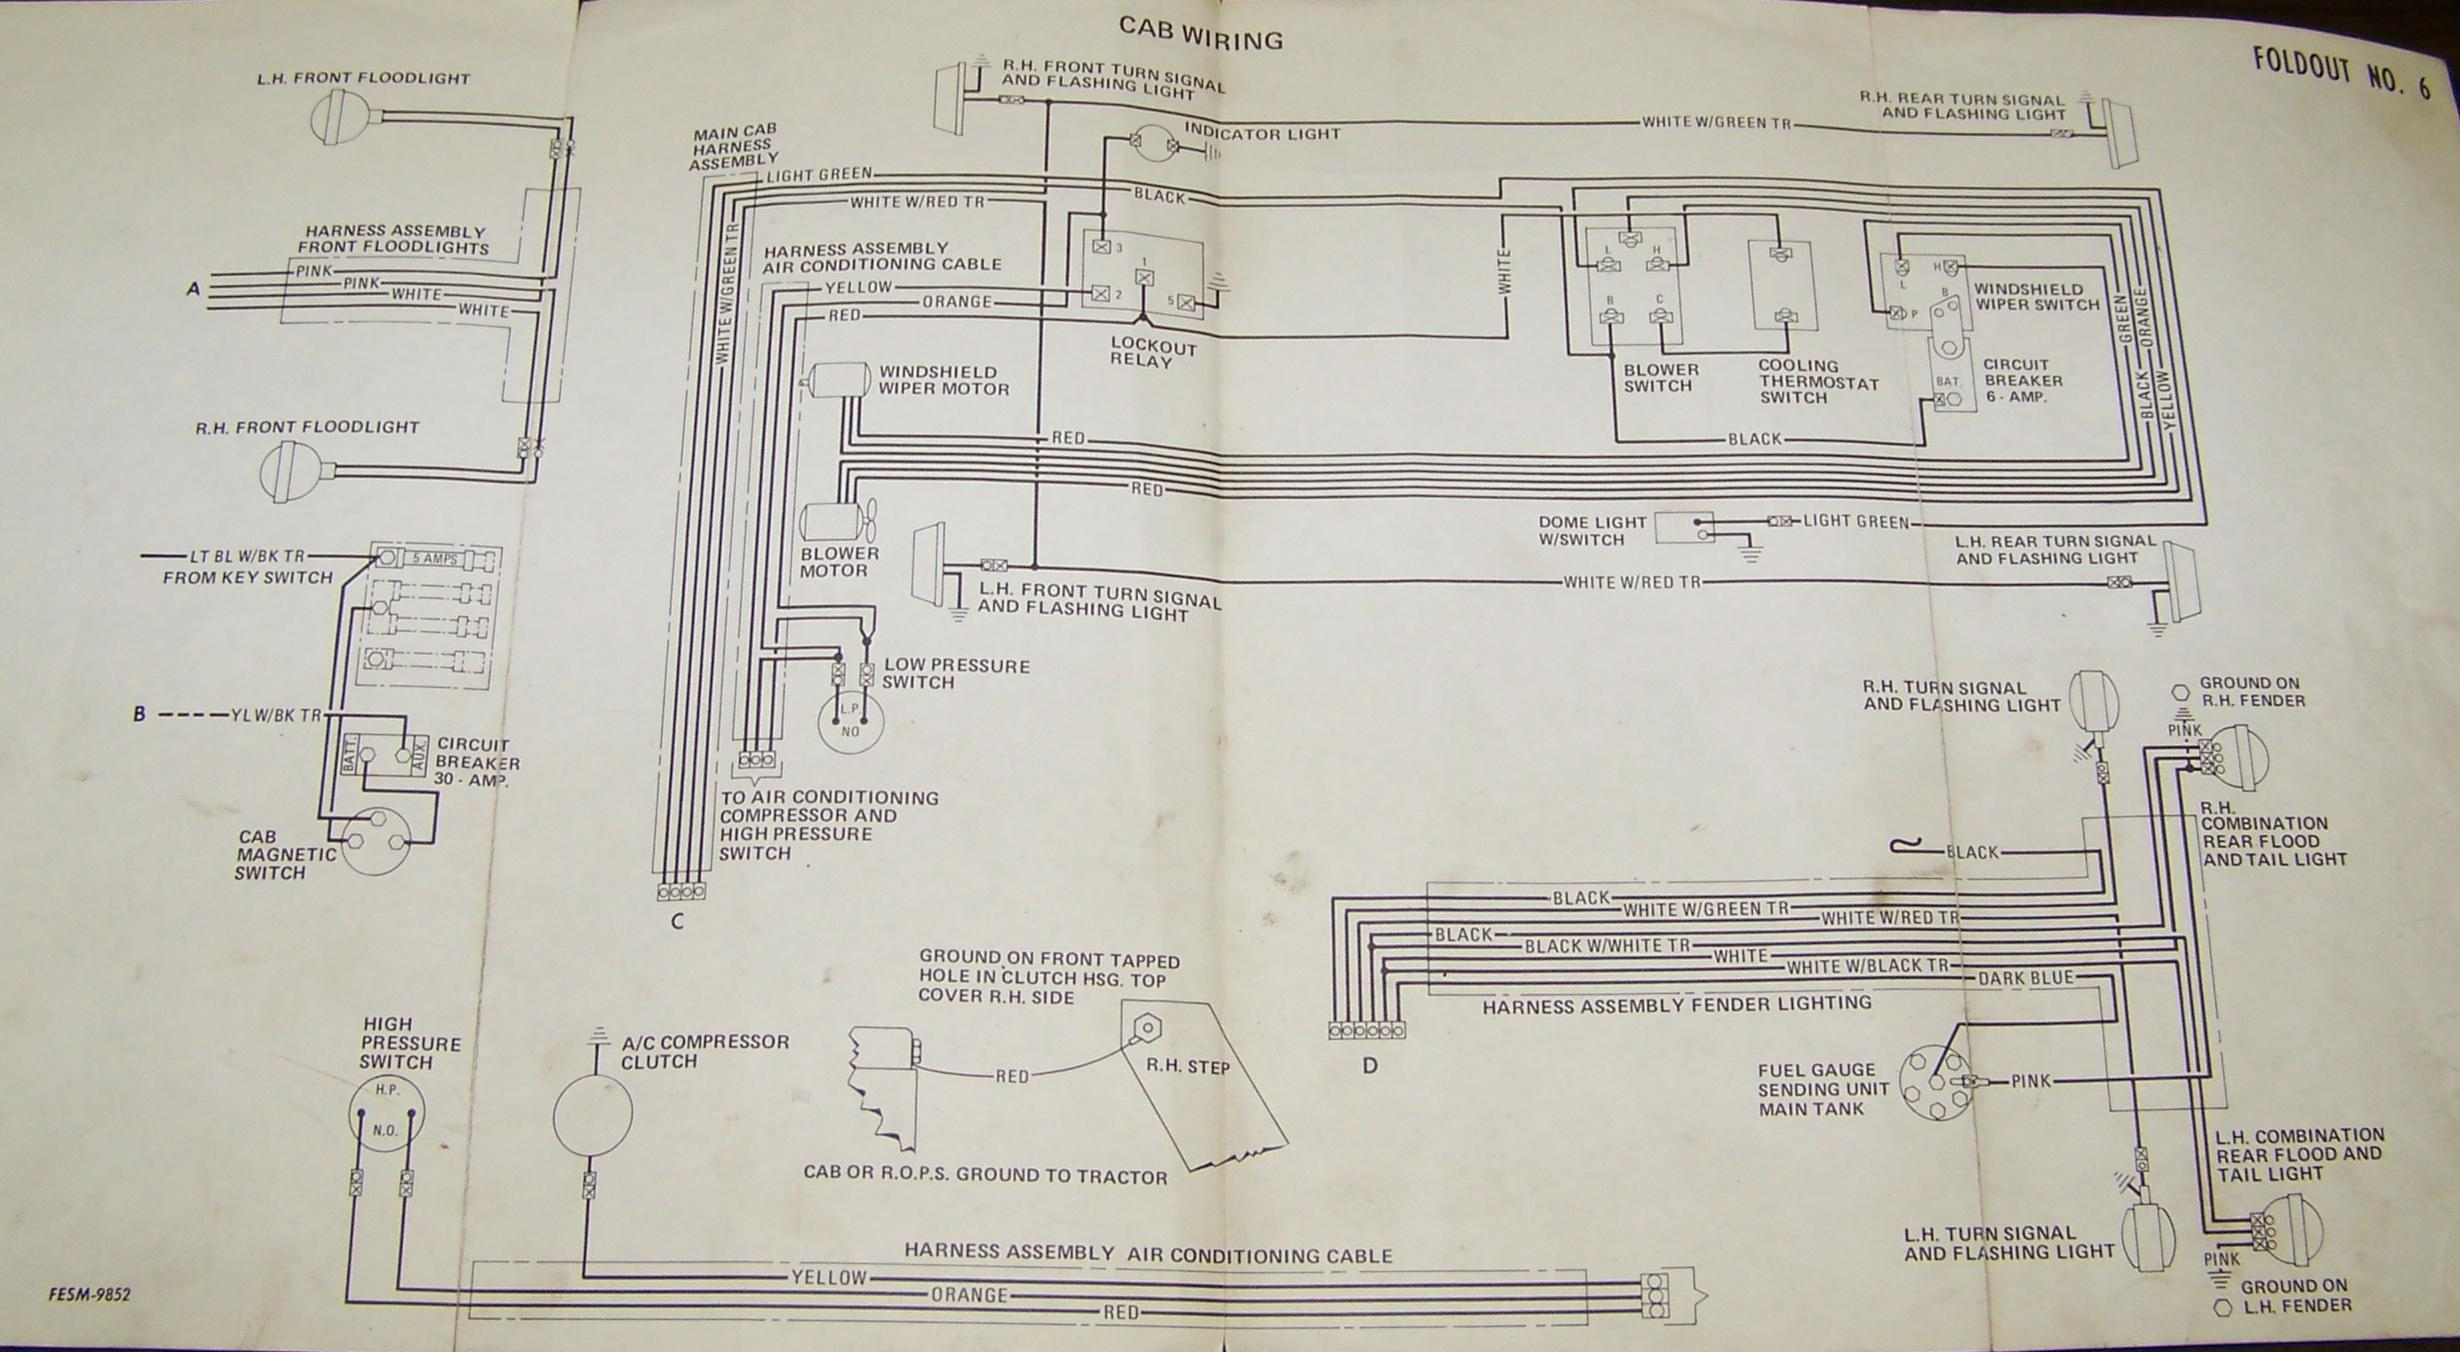 86series6 ih tractor wiring diagram ih tractor power steering \u2022 free wiring farmall cub 12 volt wiring diagram at gsmportal.co